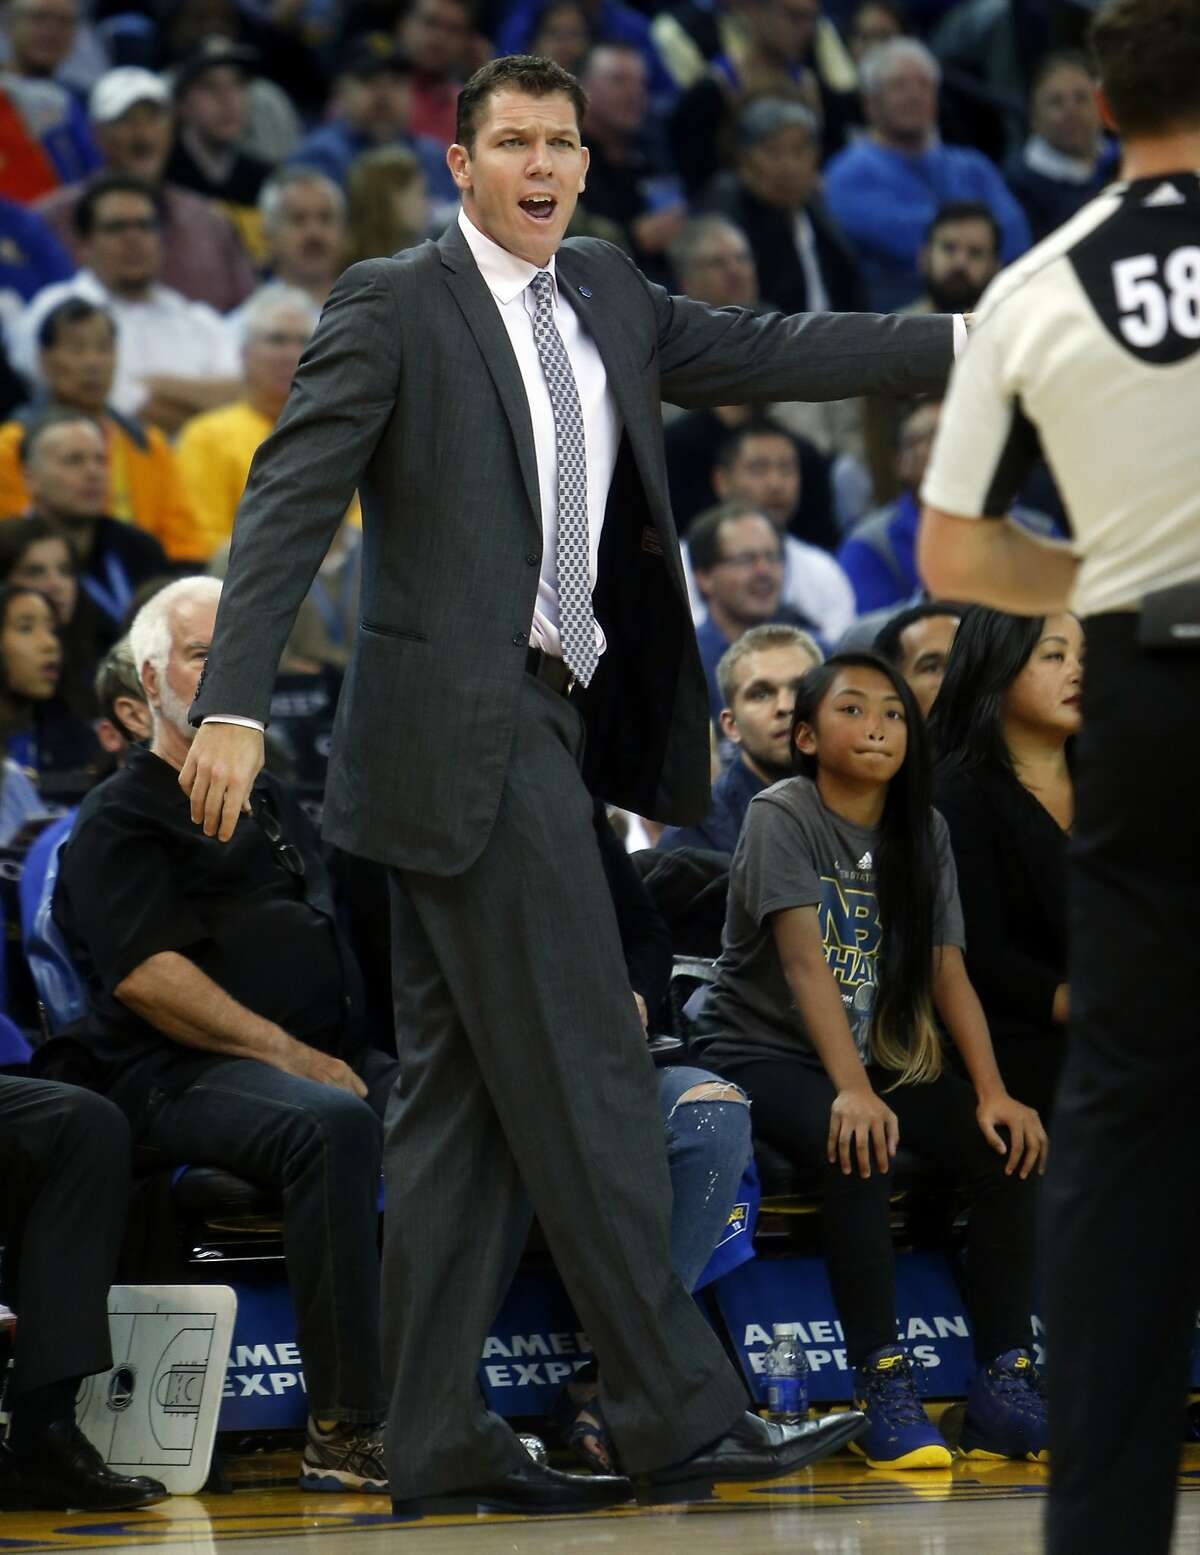 Golden State Warriors' interim head coach Luke Walton argues a call in 2nd quarter against Toronto Raptors during NBA game at Oracle Arena in Oakland, Calif., on Tuesday, November 17, 2015.